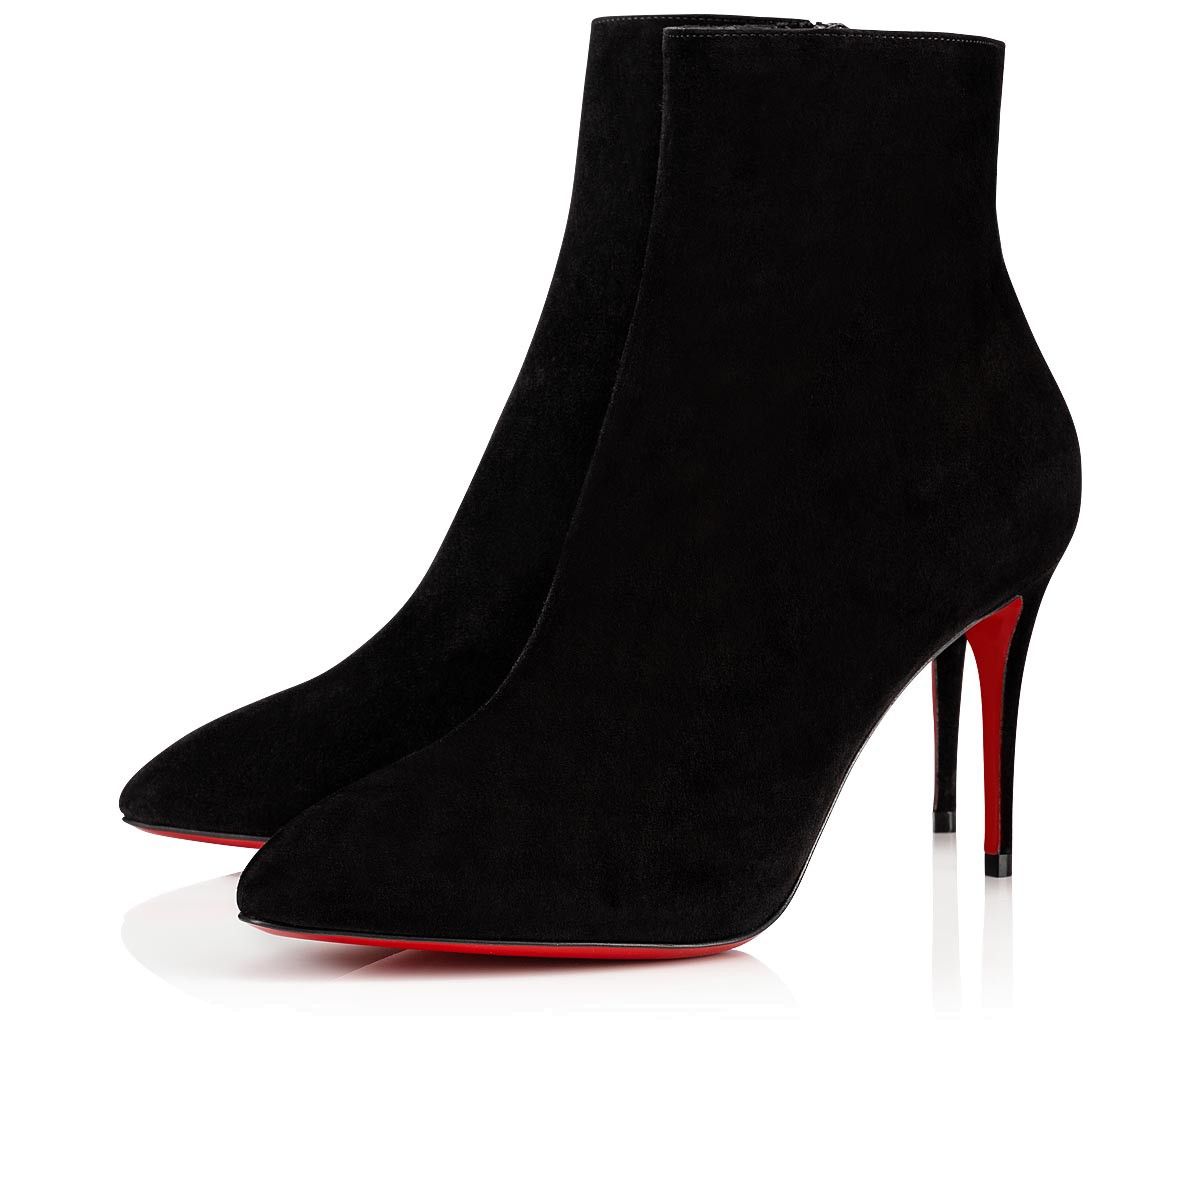 Shoes - Eloise Booty - Christian Louboutin